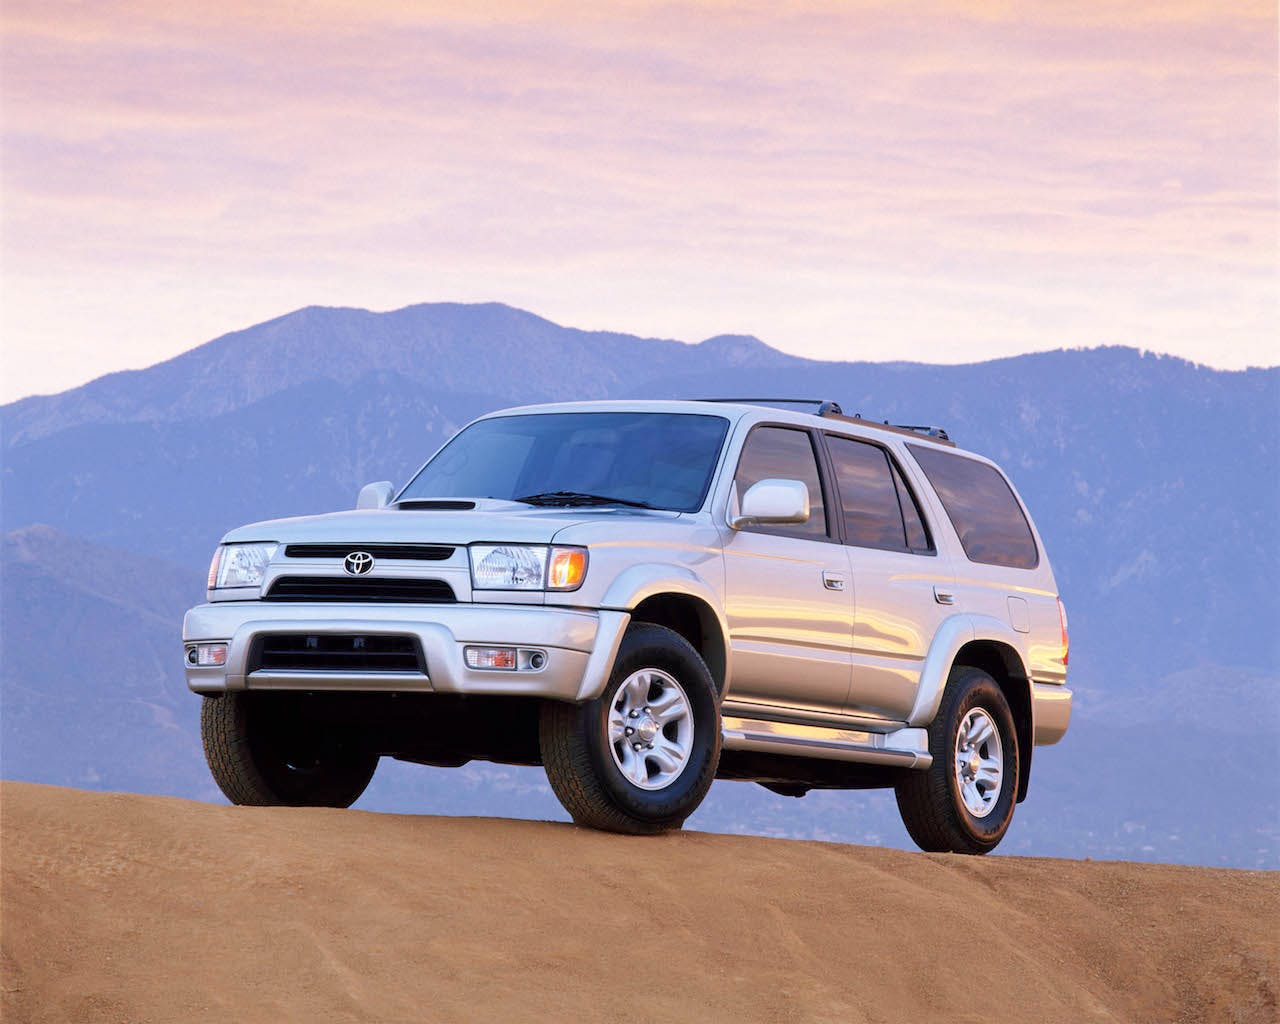 Magnificent Know Before You Buy How To Inspect A Used Toyota 4Runner Carfax Wiring Cloud Filiciilluminateatxorg